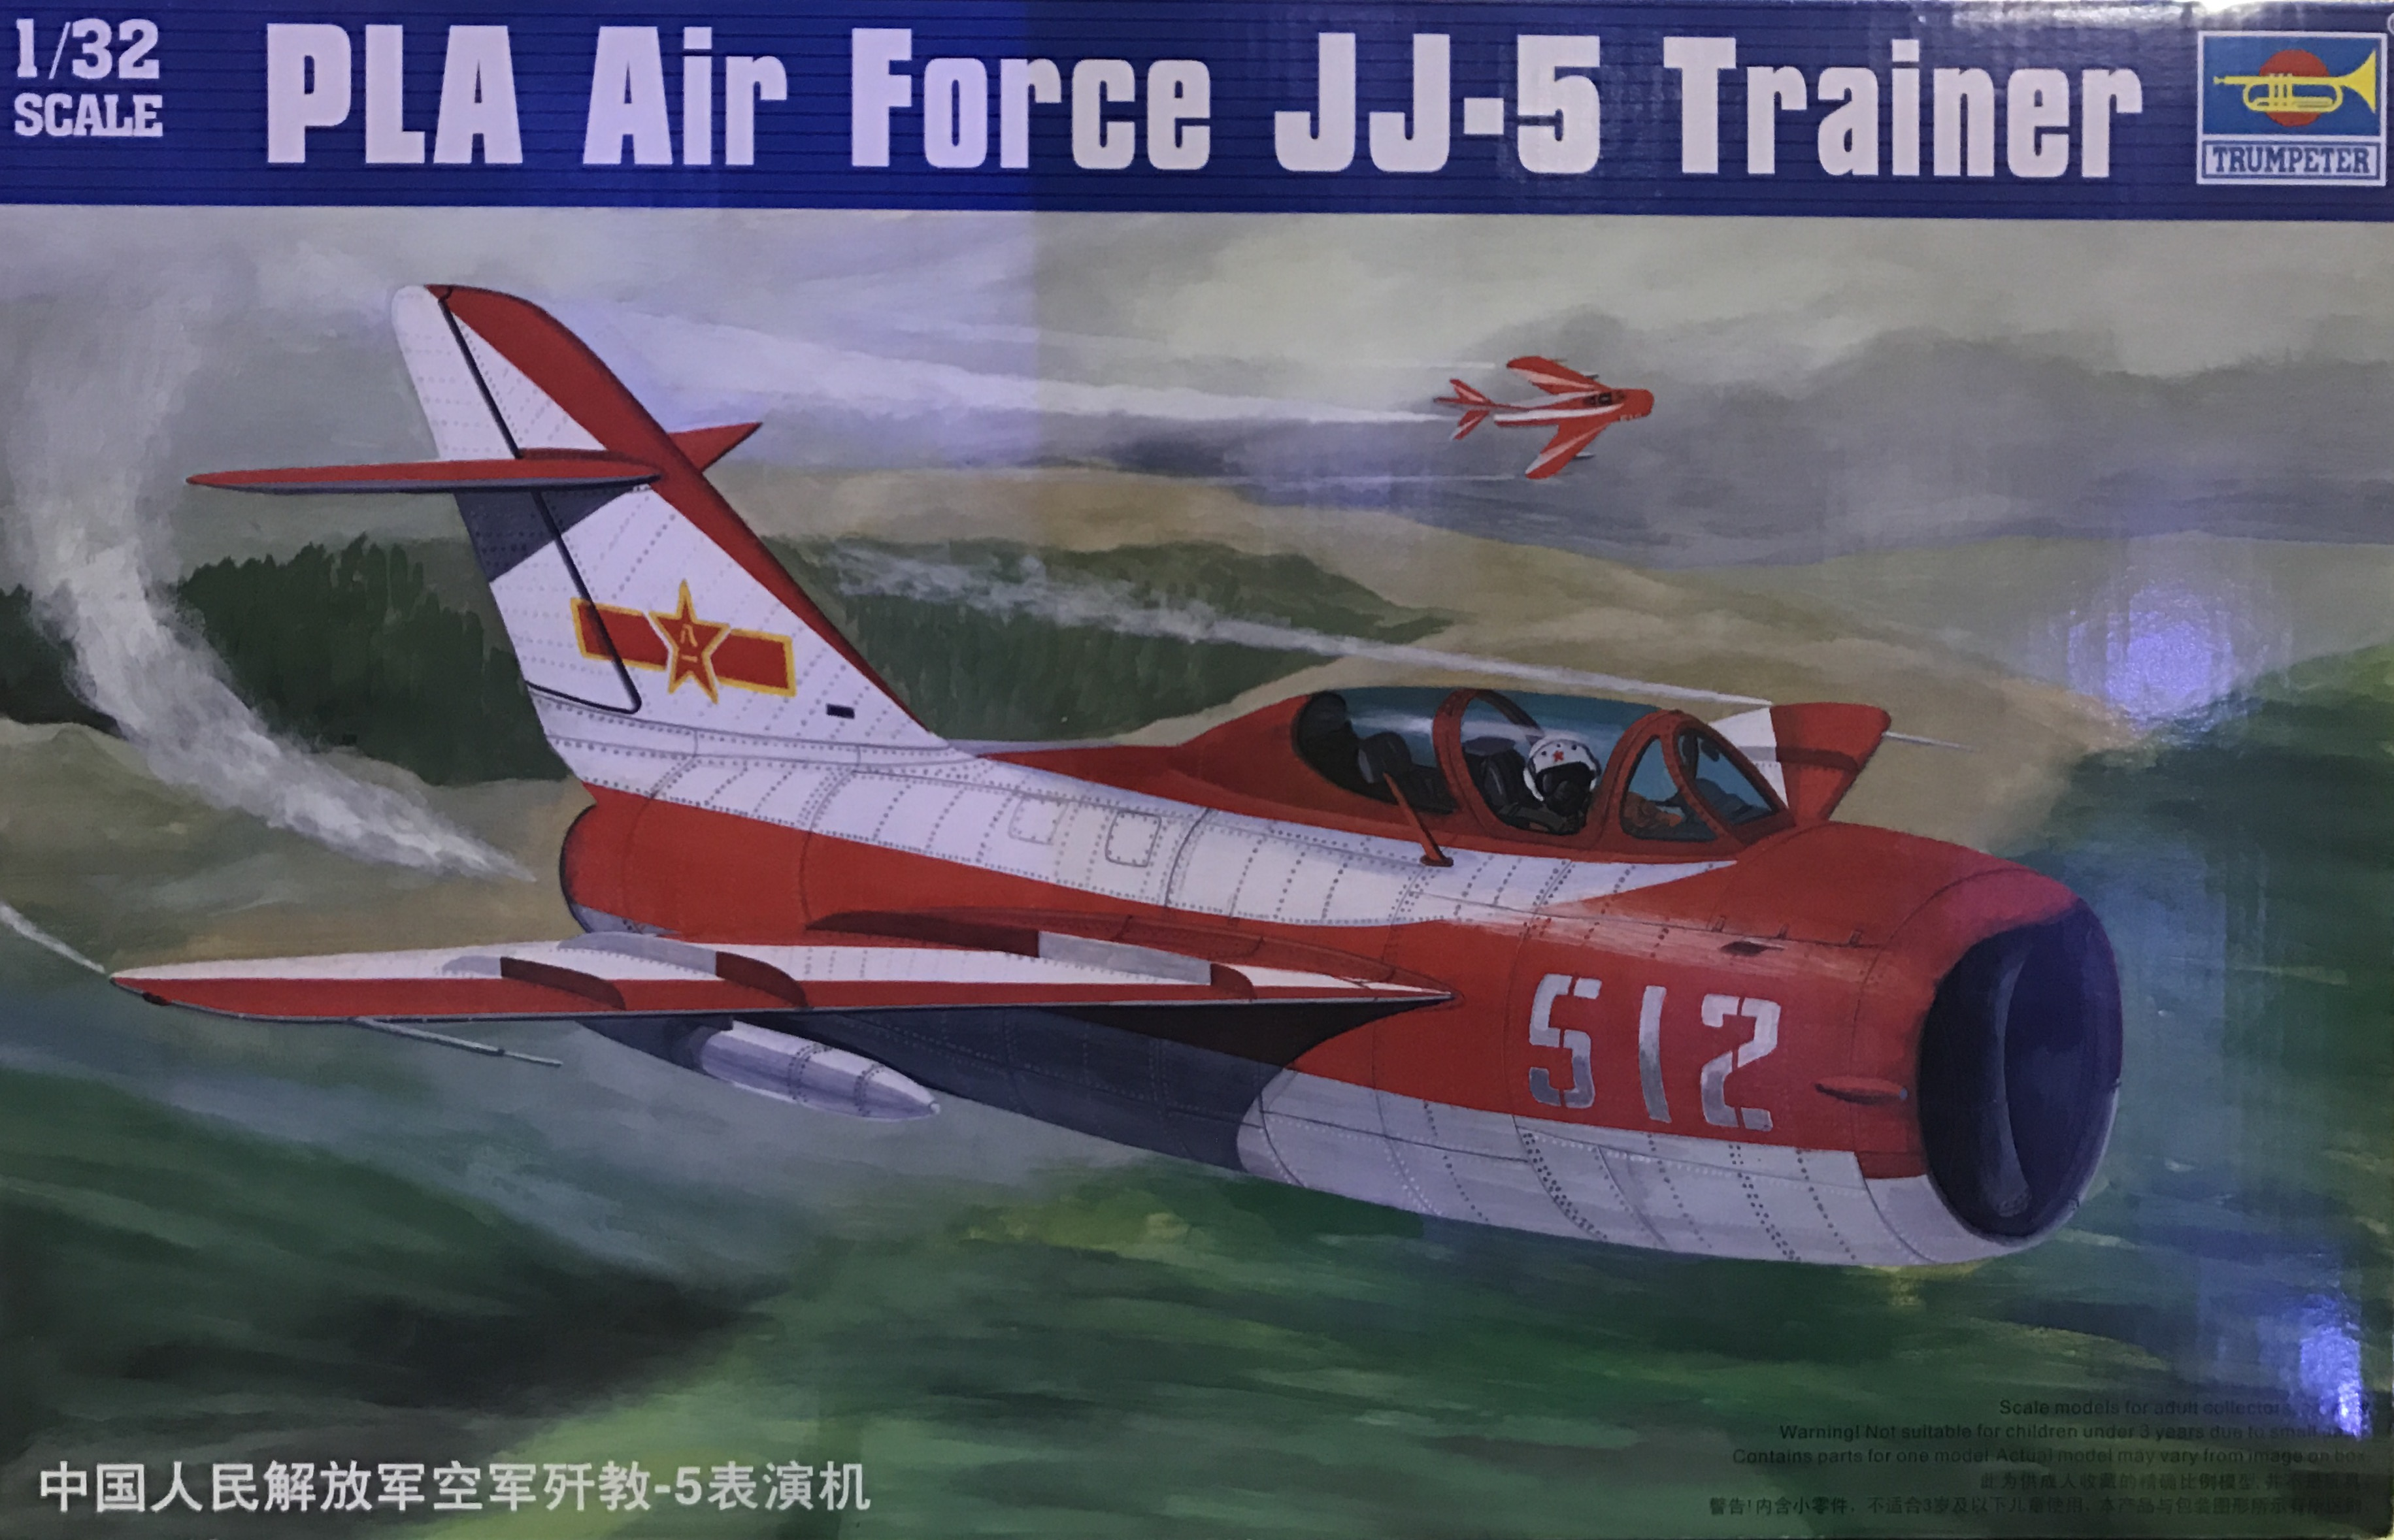 1/32 PLA Air Force JJ-5 Trainer [Trumpeter]